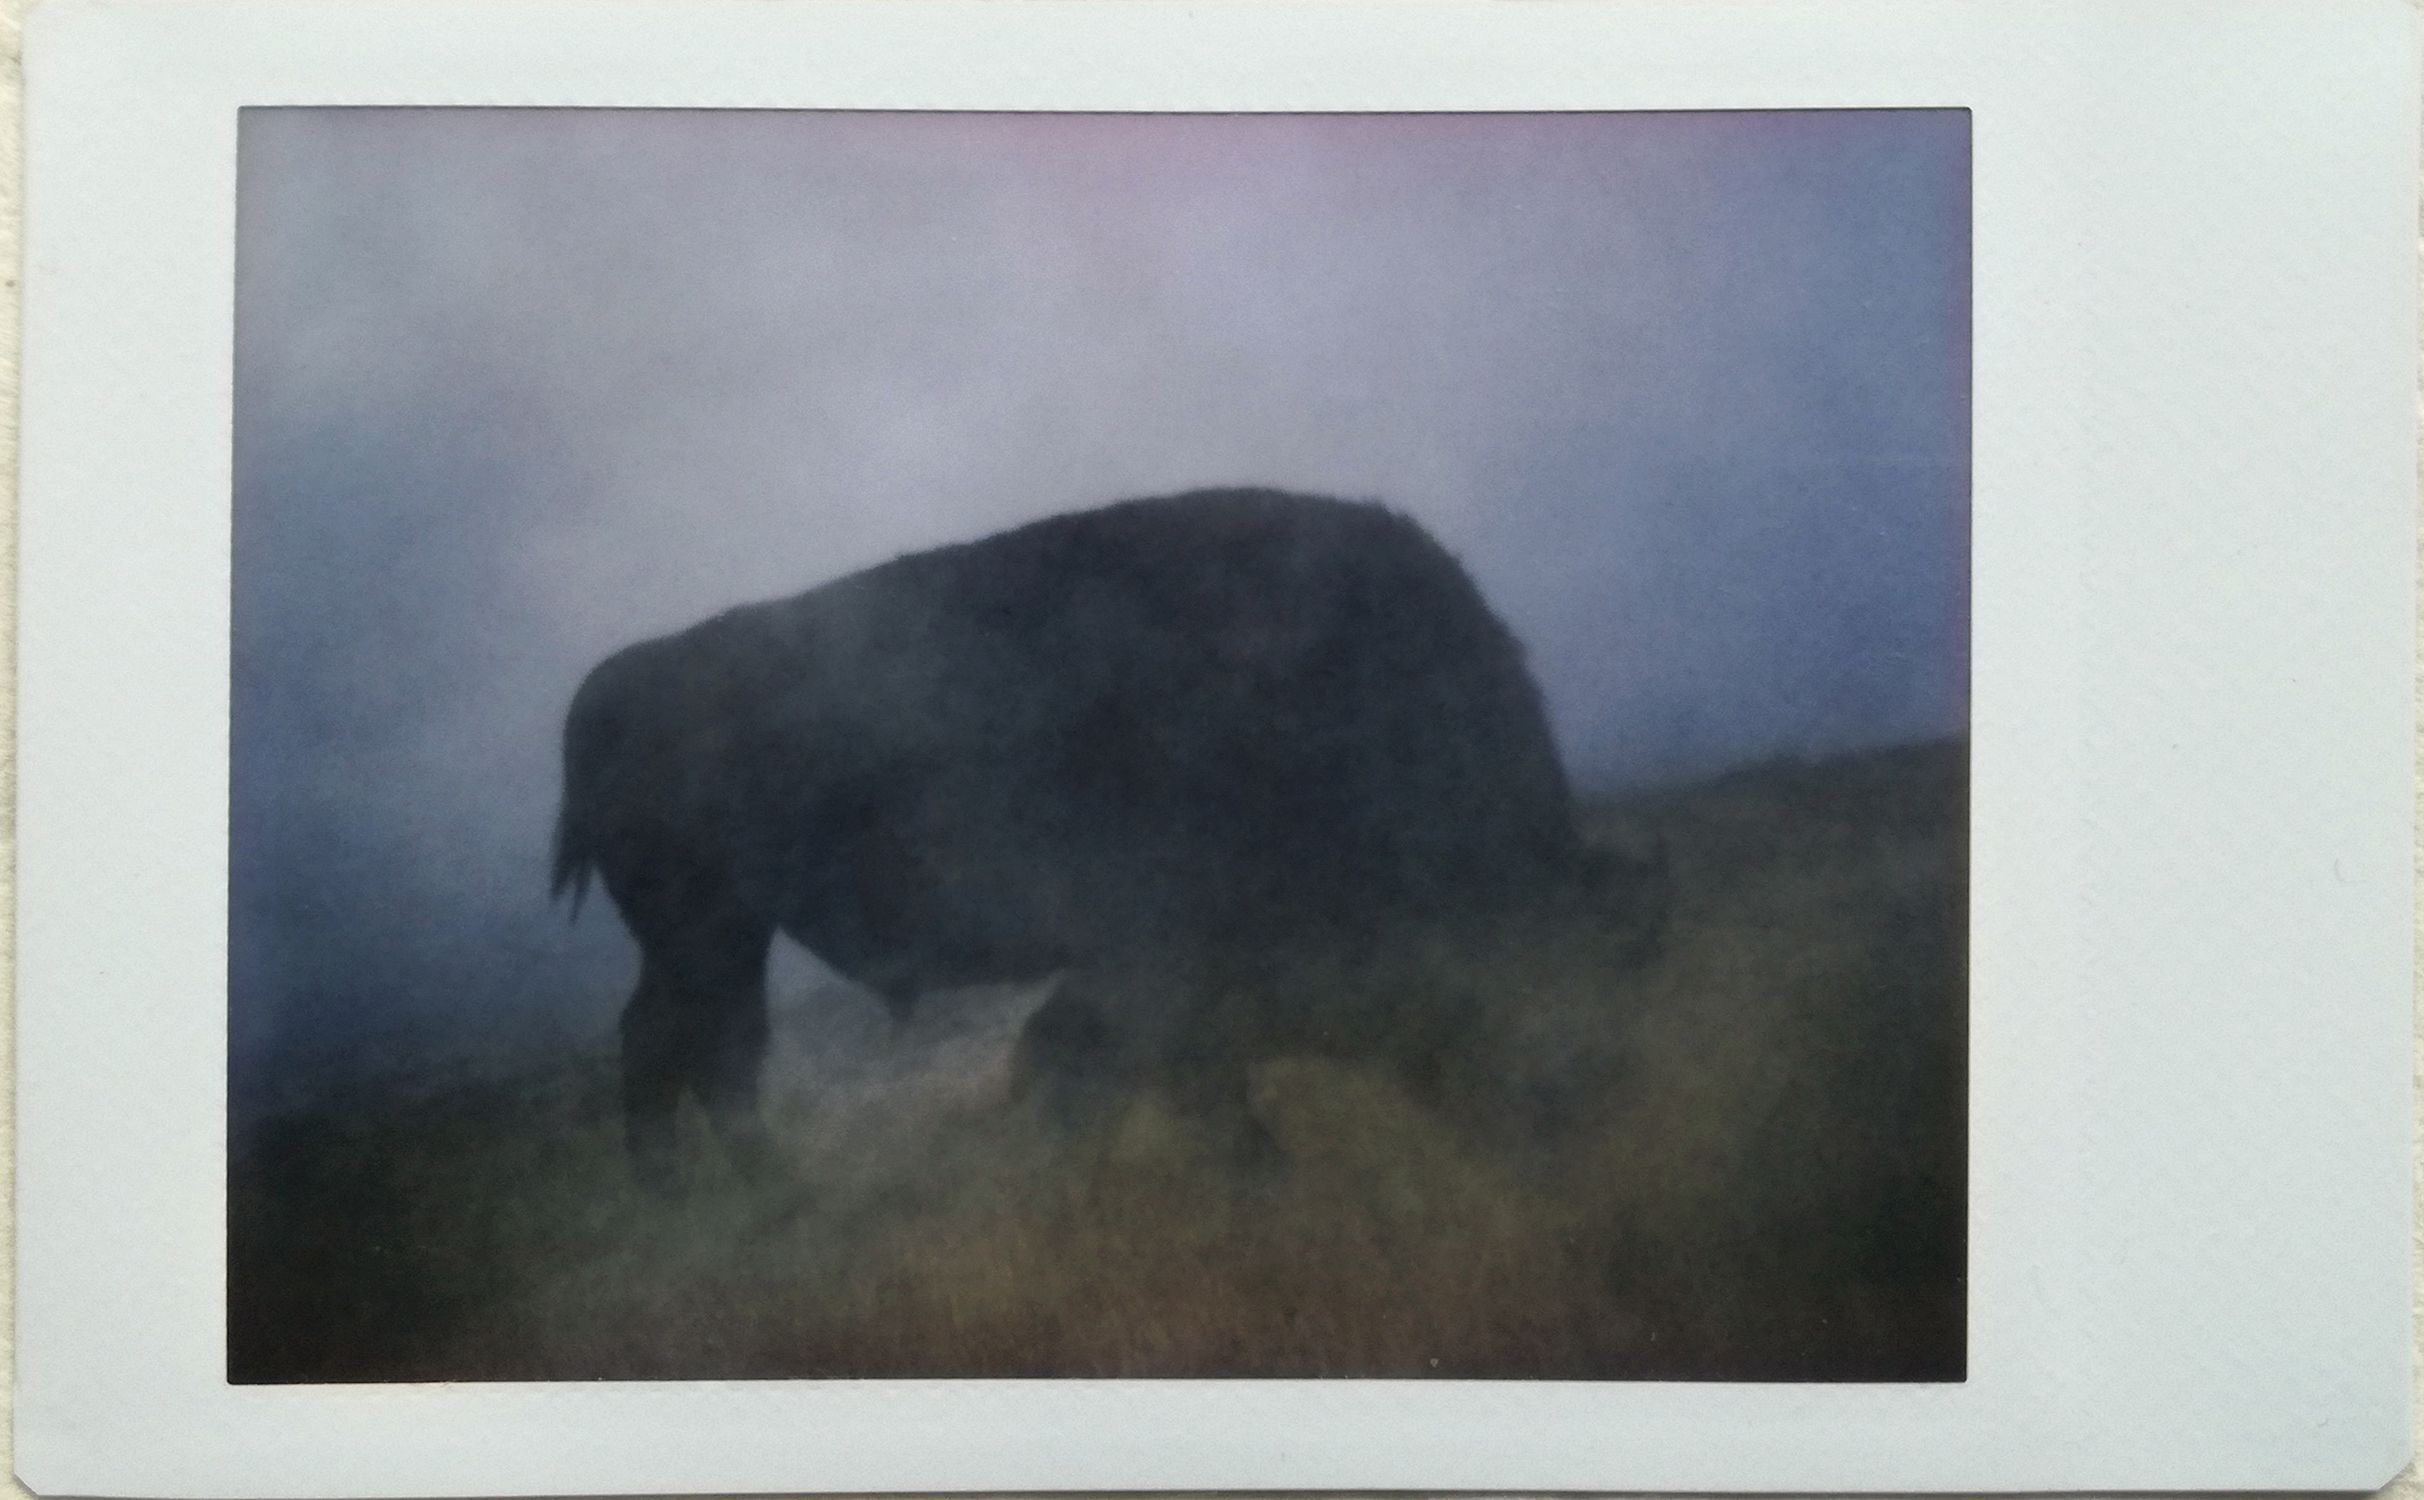 Kimdary_yin_Polaroid_Podcast_travel_utah_wyoming_USA